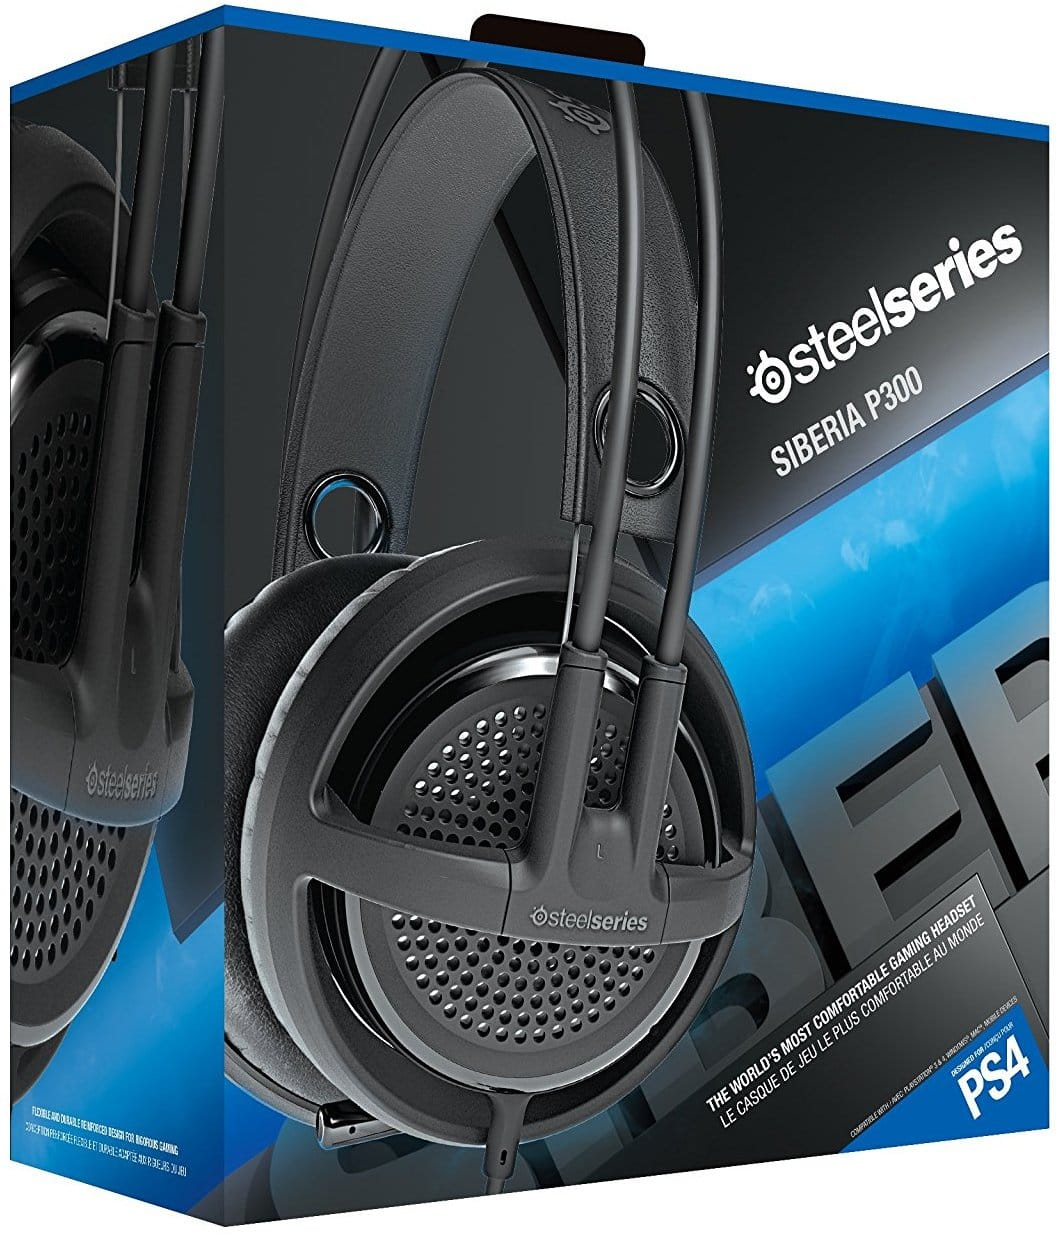 SteelSeries Siberia P300 Gaming Headset for PS4 (Black) $31.95 + Free Shipping via Amazon